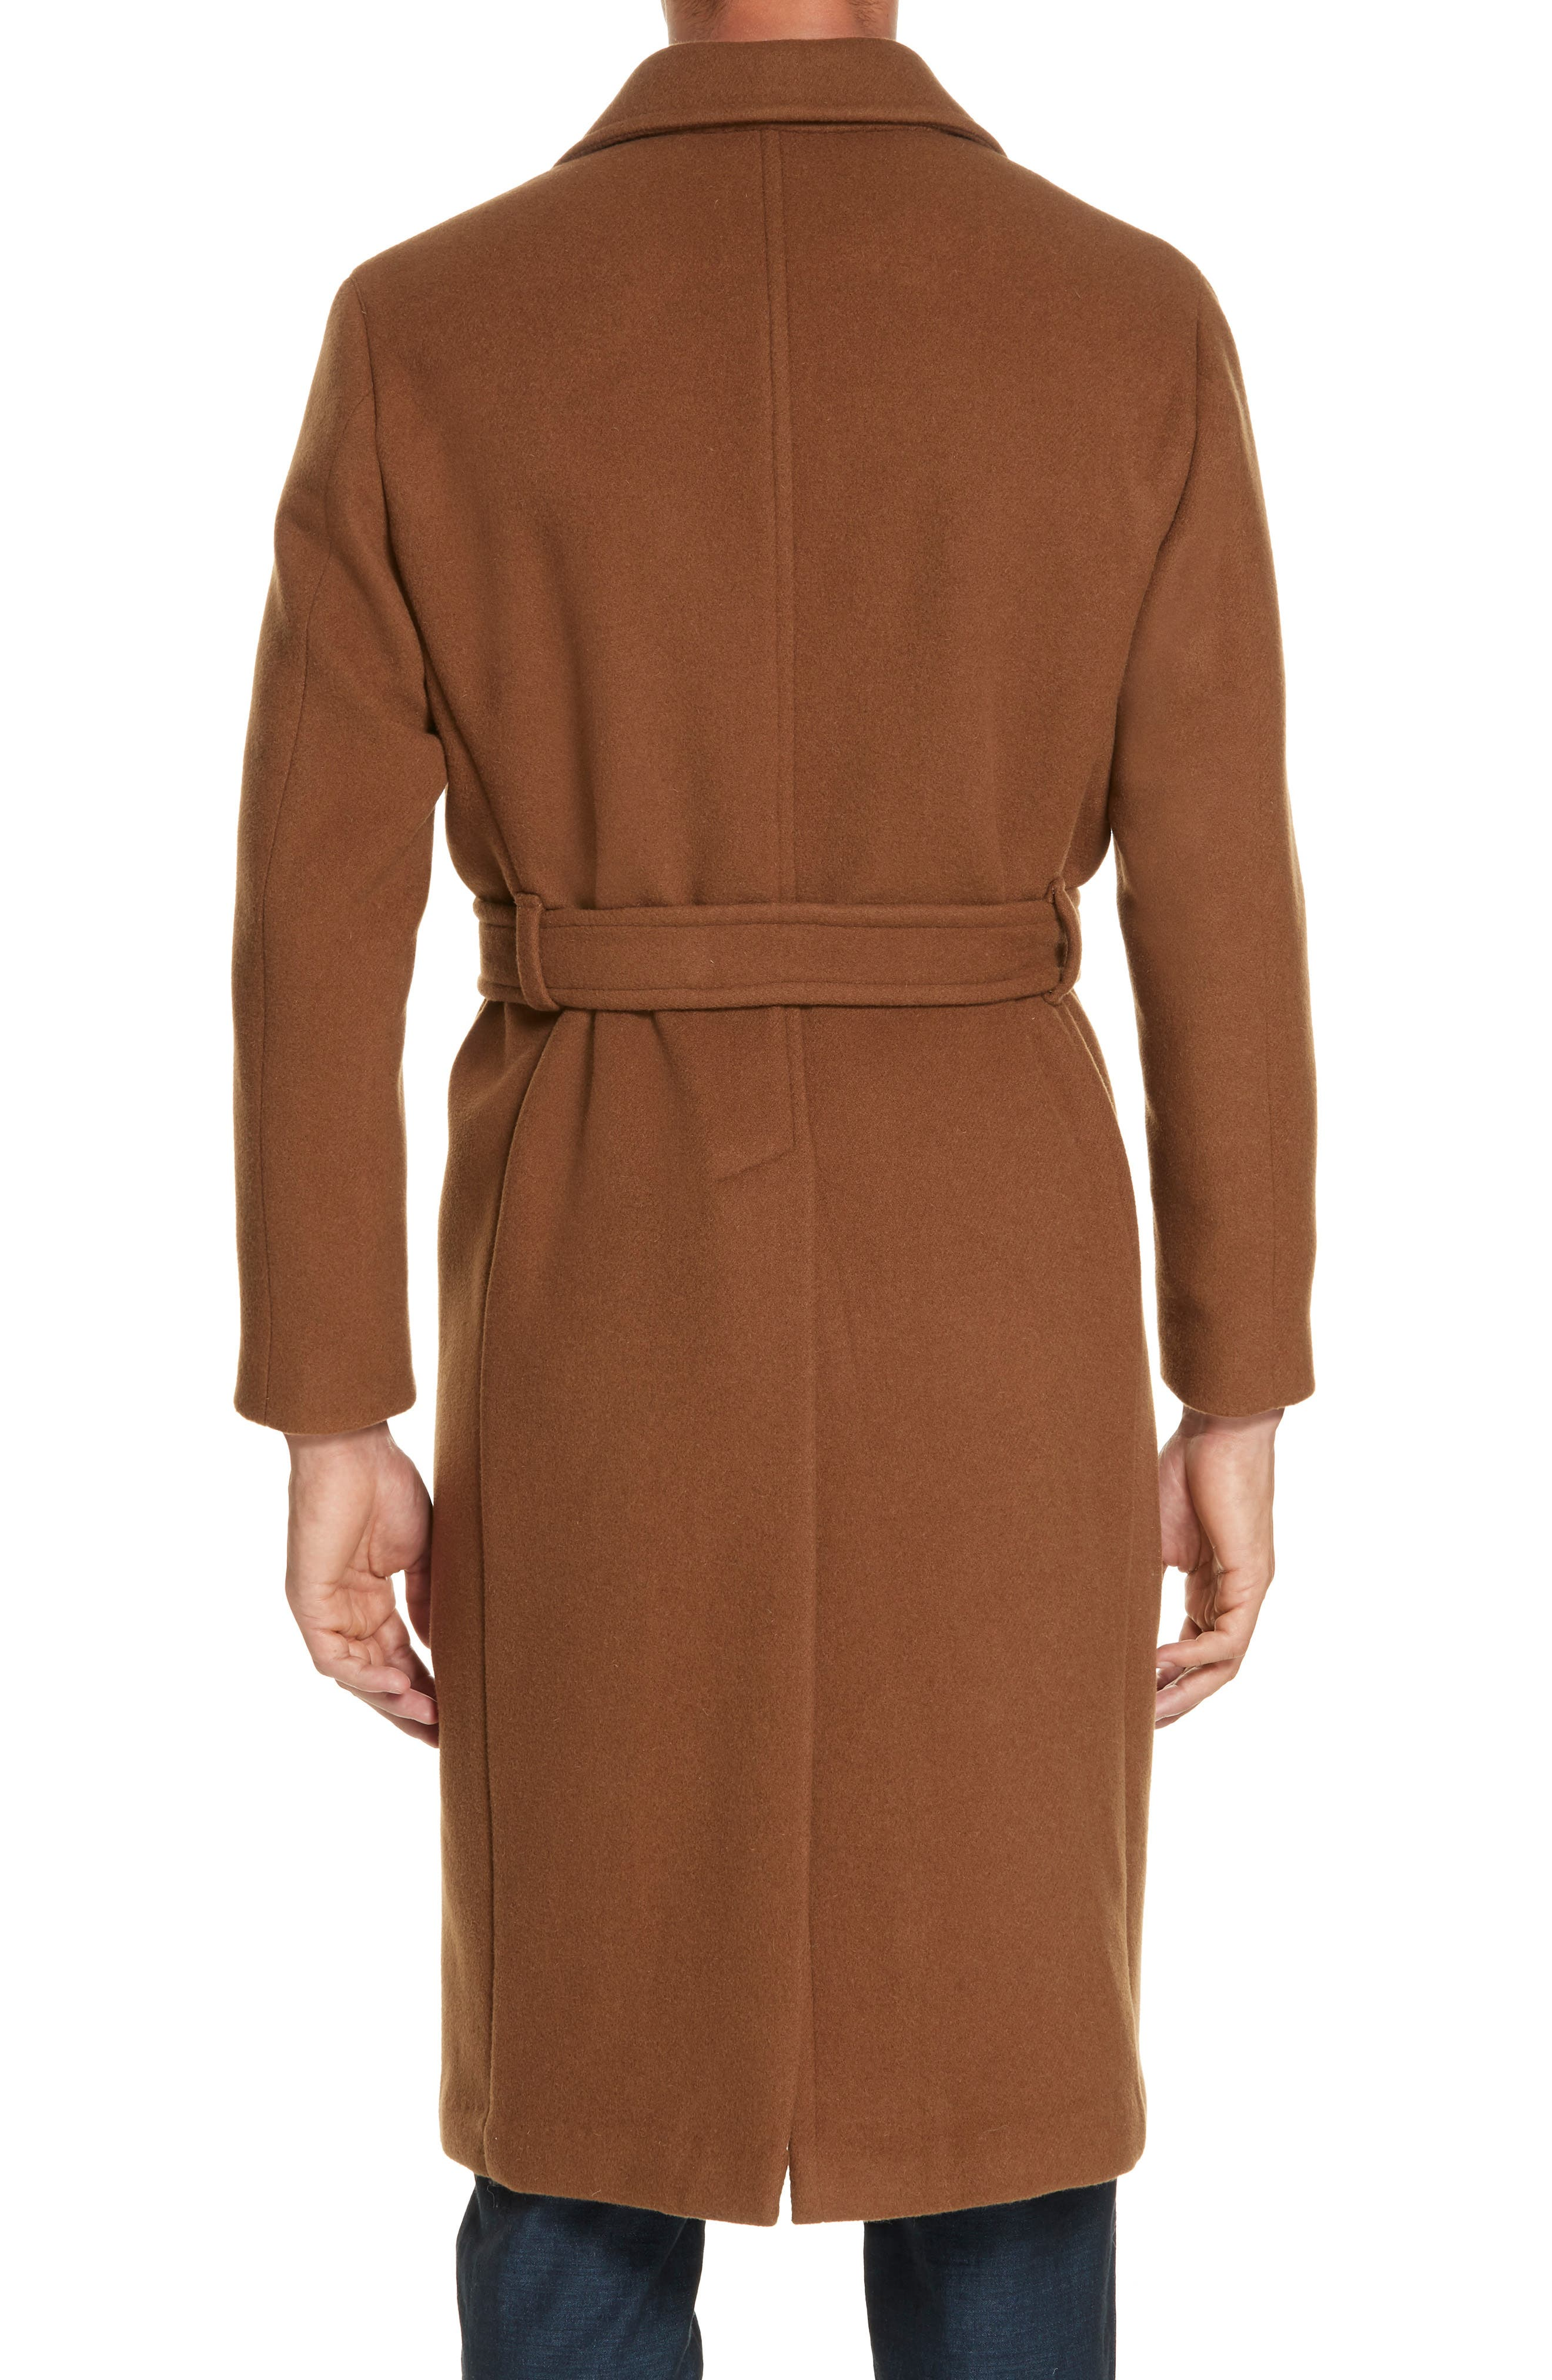 Wool & Cashmere Trench Coat,                             Alternate thumbnail 2, color,                             TAN